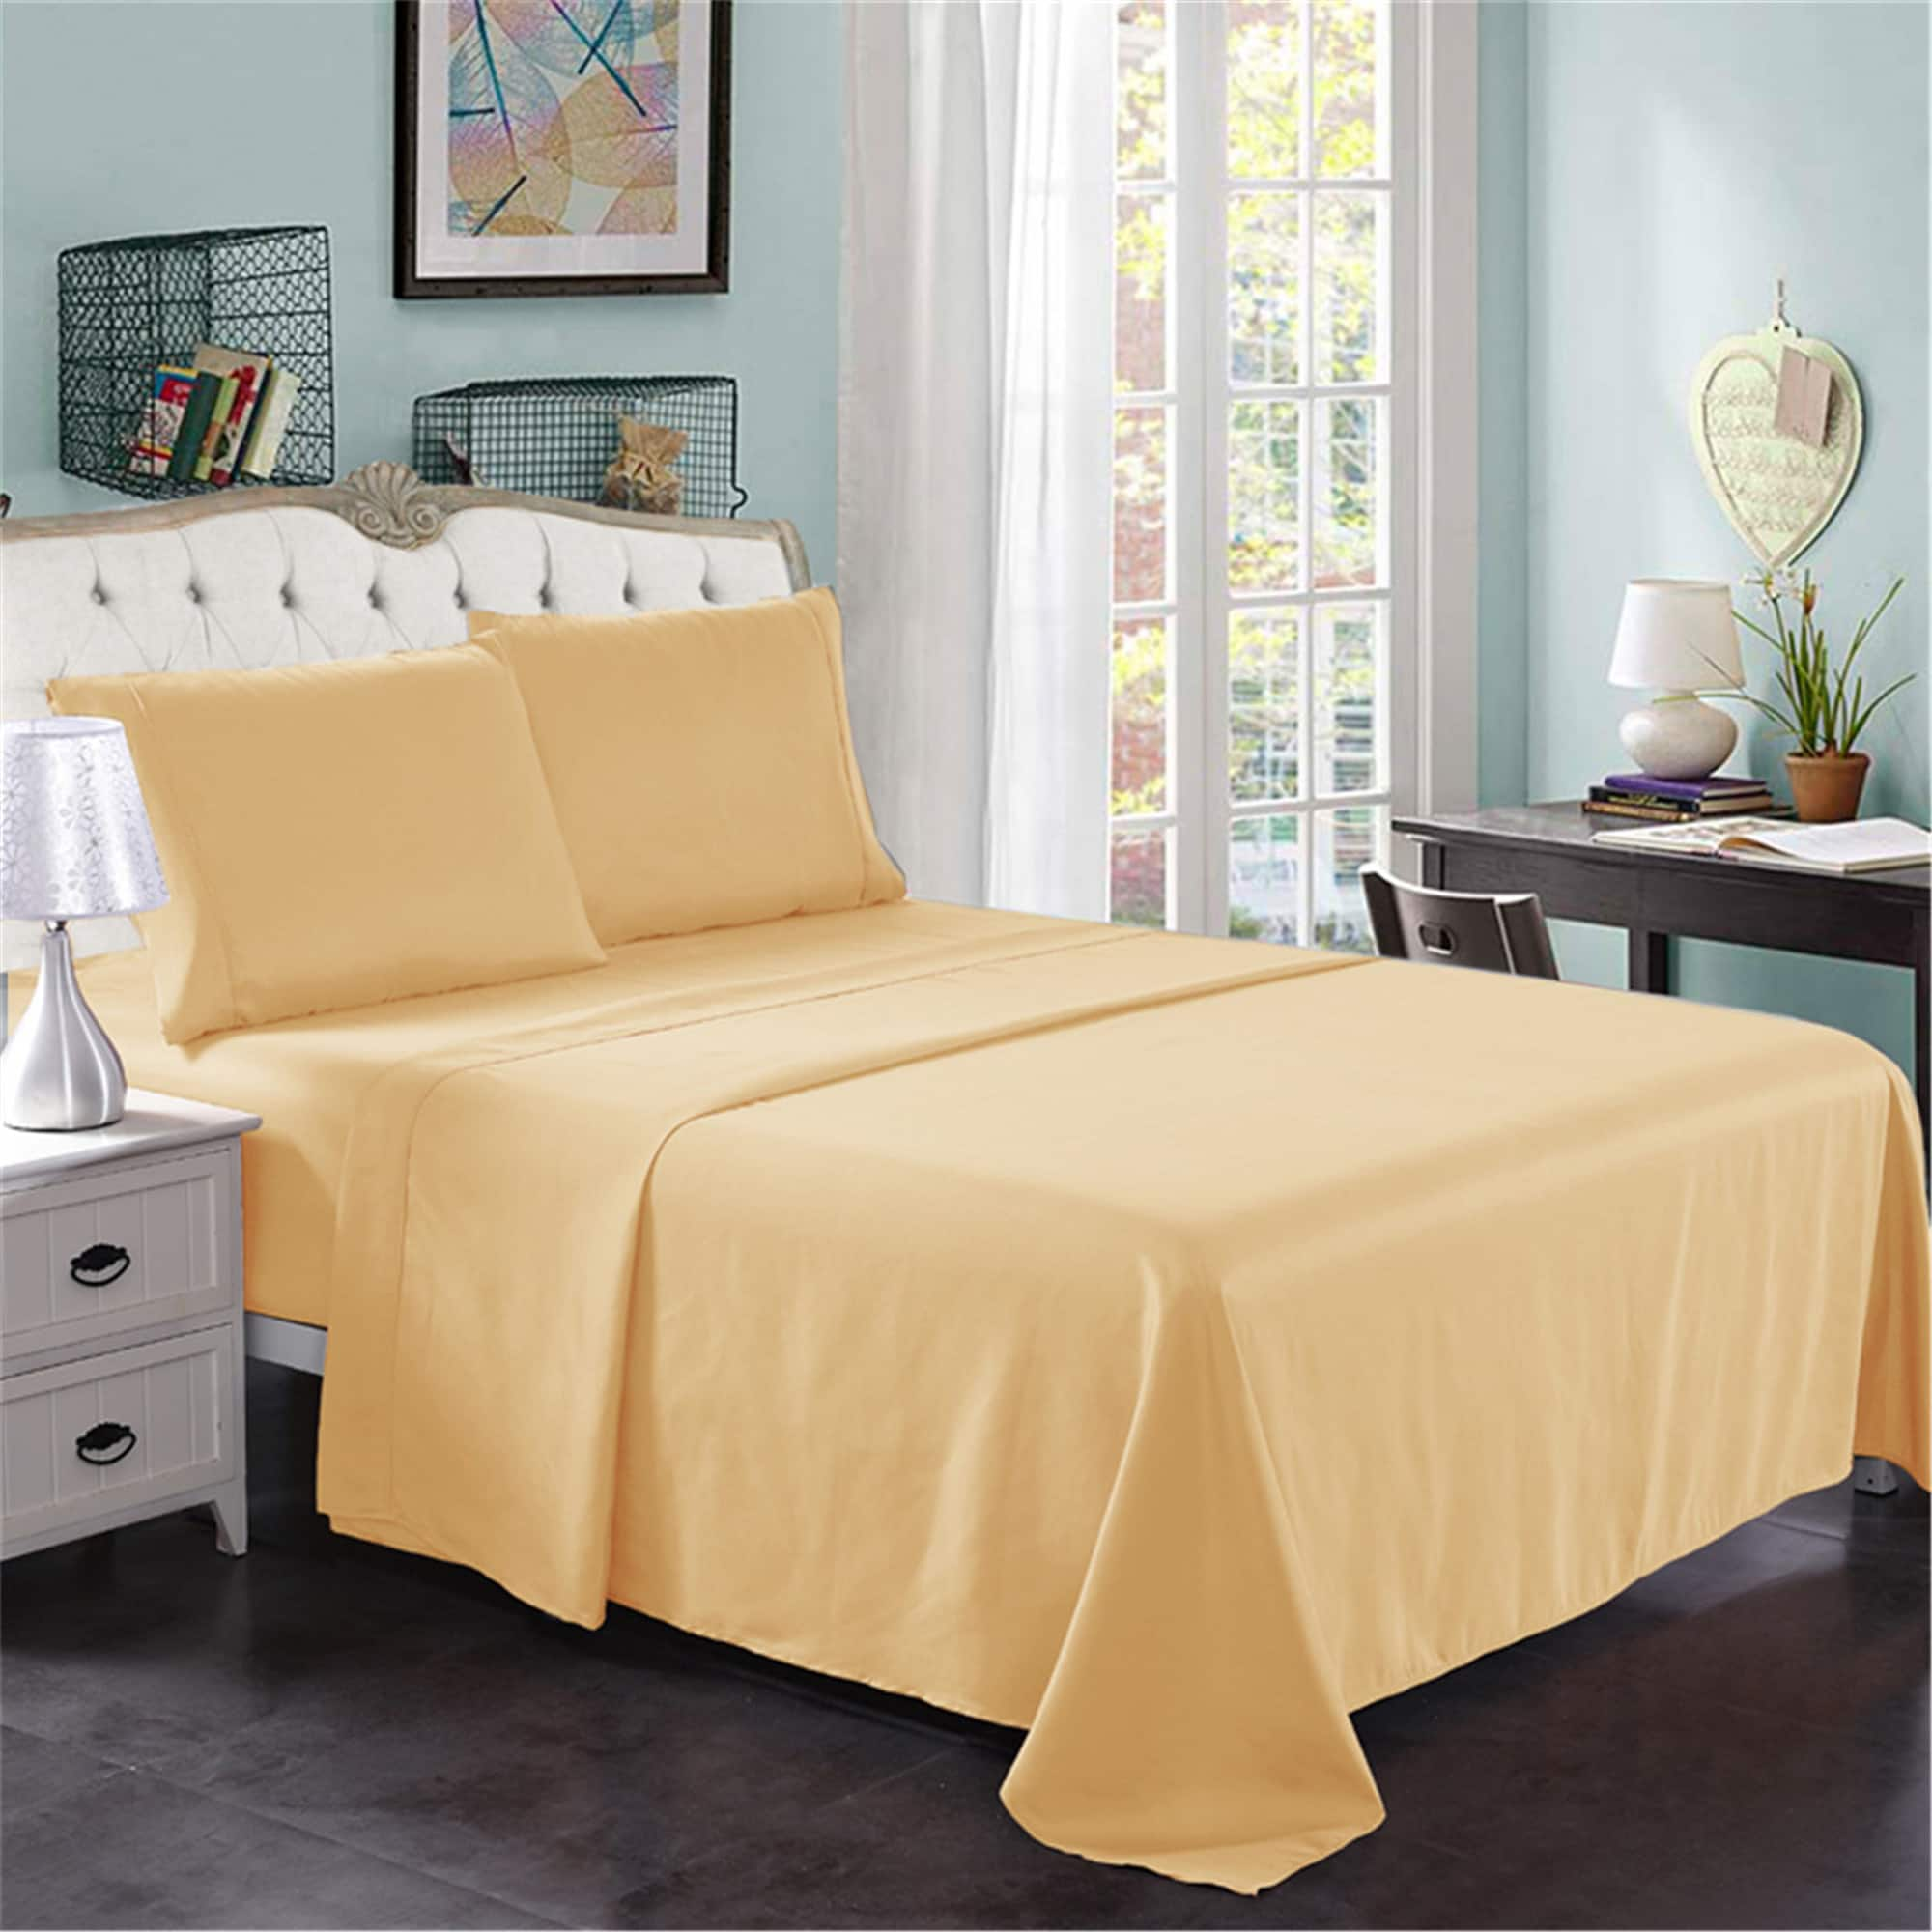 Amazing bed sheets $16